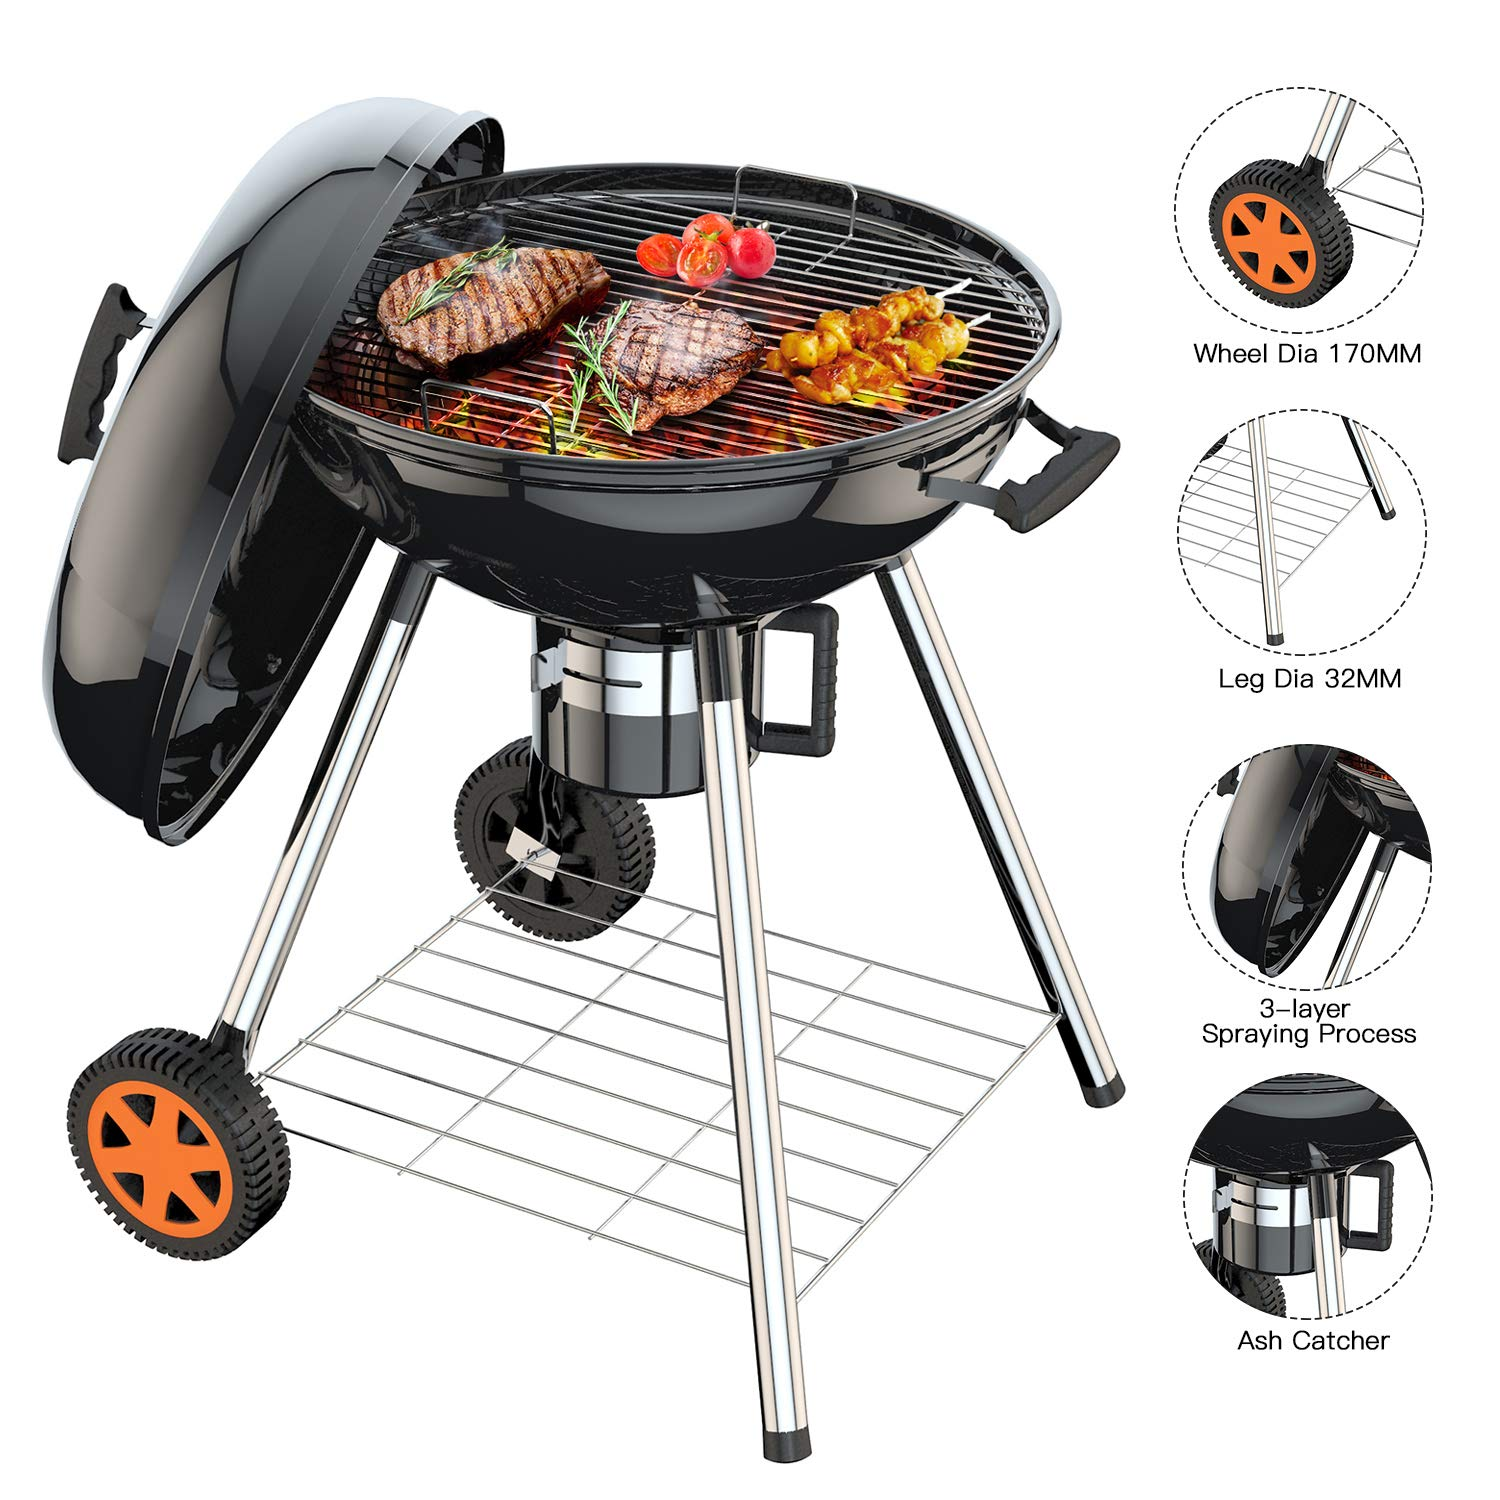 TACKLIFE 22.5 inch Large Charcoal Grill for Outdoor Grilling Barbecue, Camping Cooking, Portable BBQ Grill